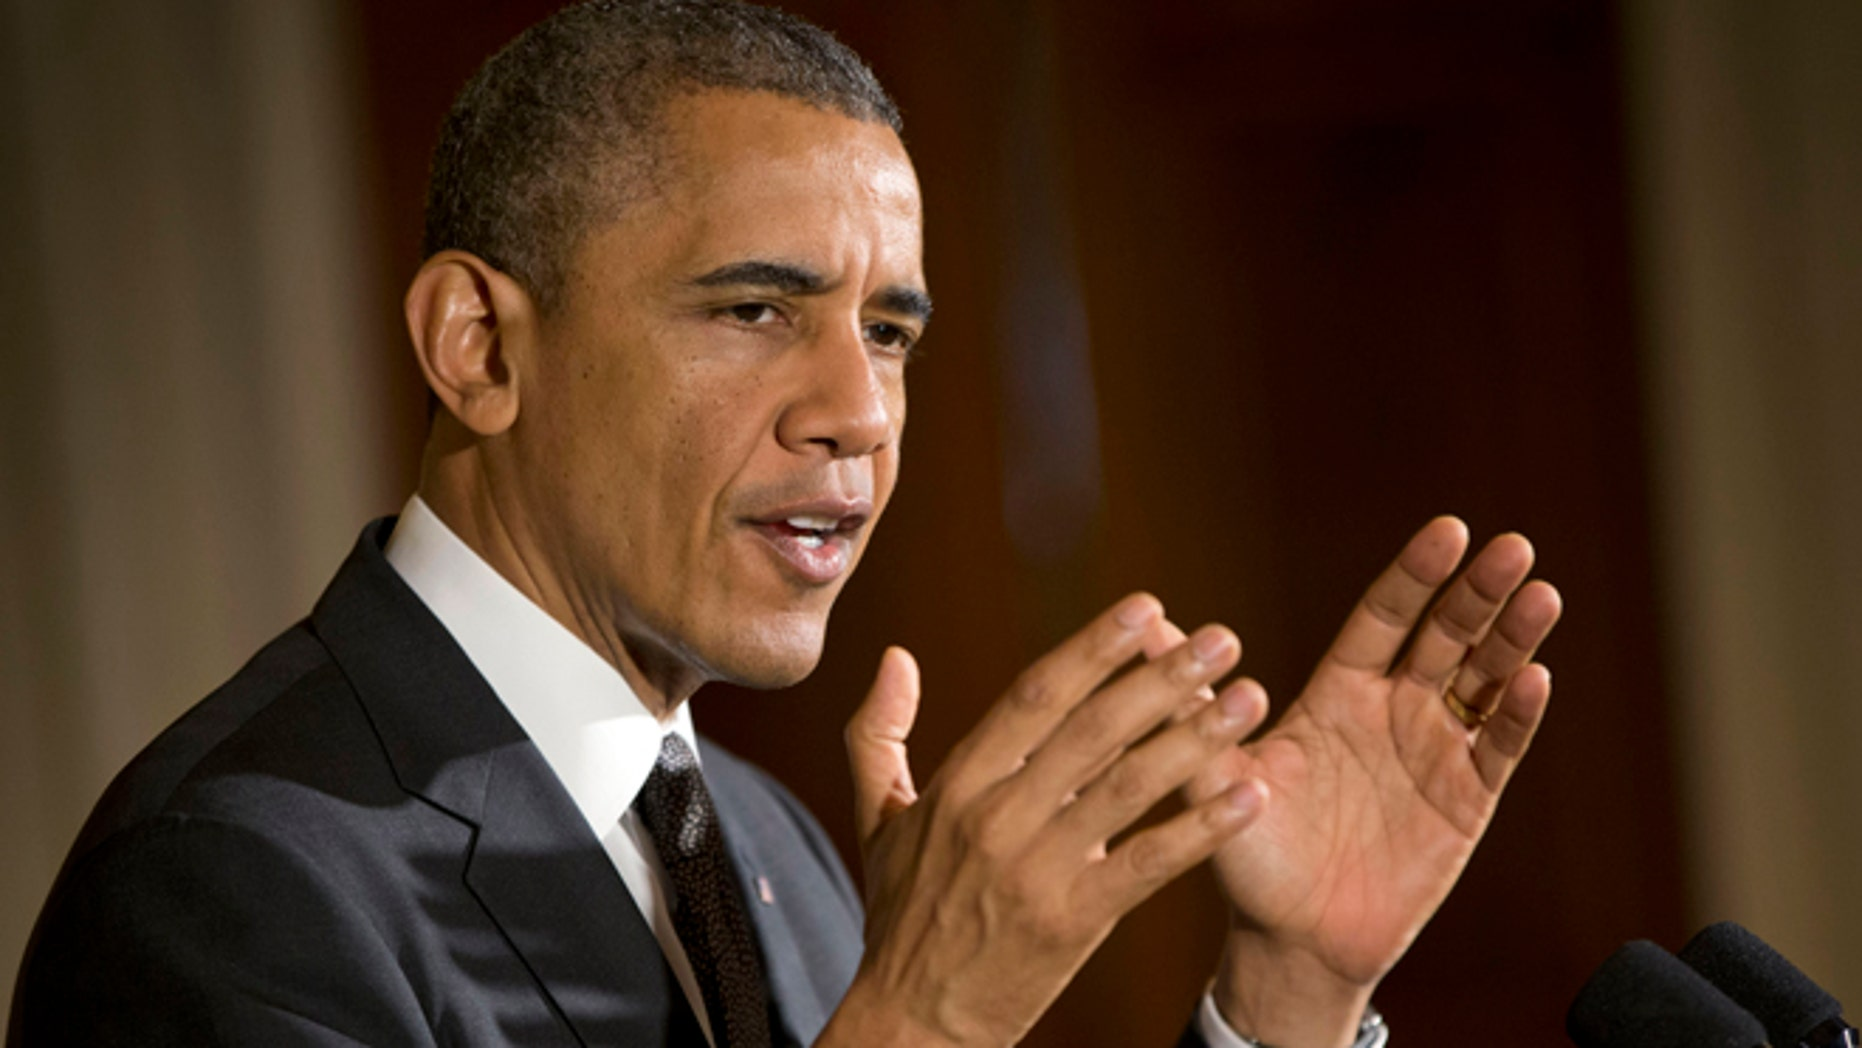 President Barack Obama speaks at a celebration of Cinco de Mayo in the East Room of the White House in Washington, Monday, May 5, 2014. (AP Photo/Pablo Martinez Monsivais)